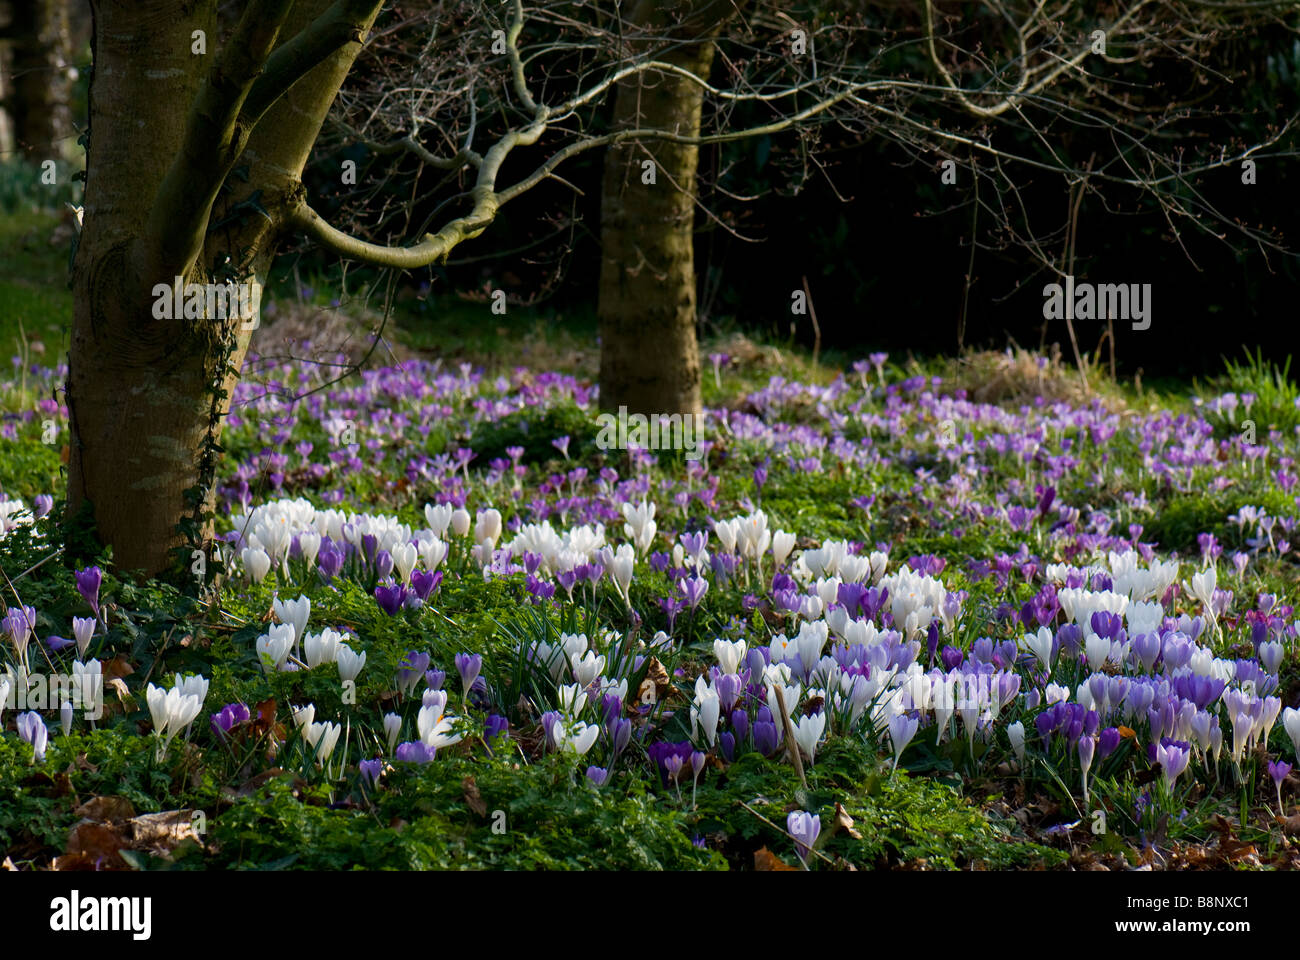 Purple and white spring crocus on a lawn - Stock Image